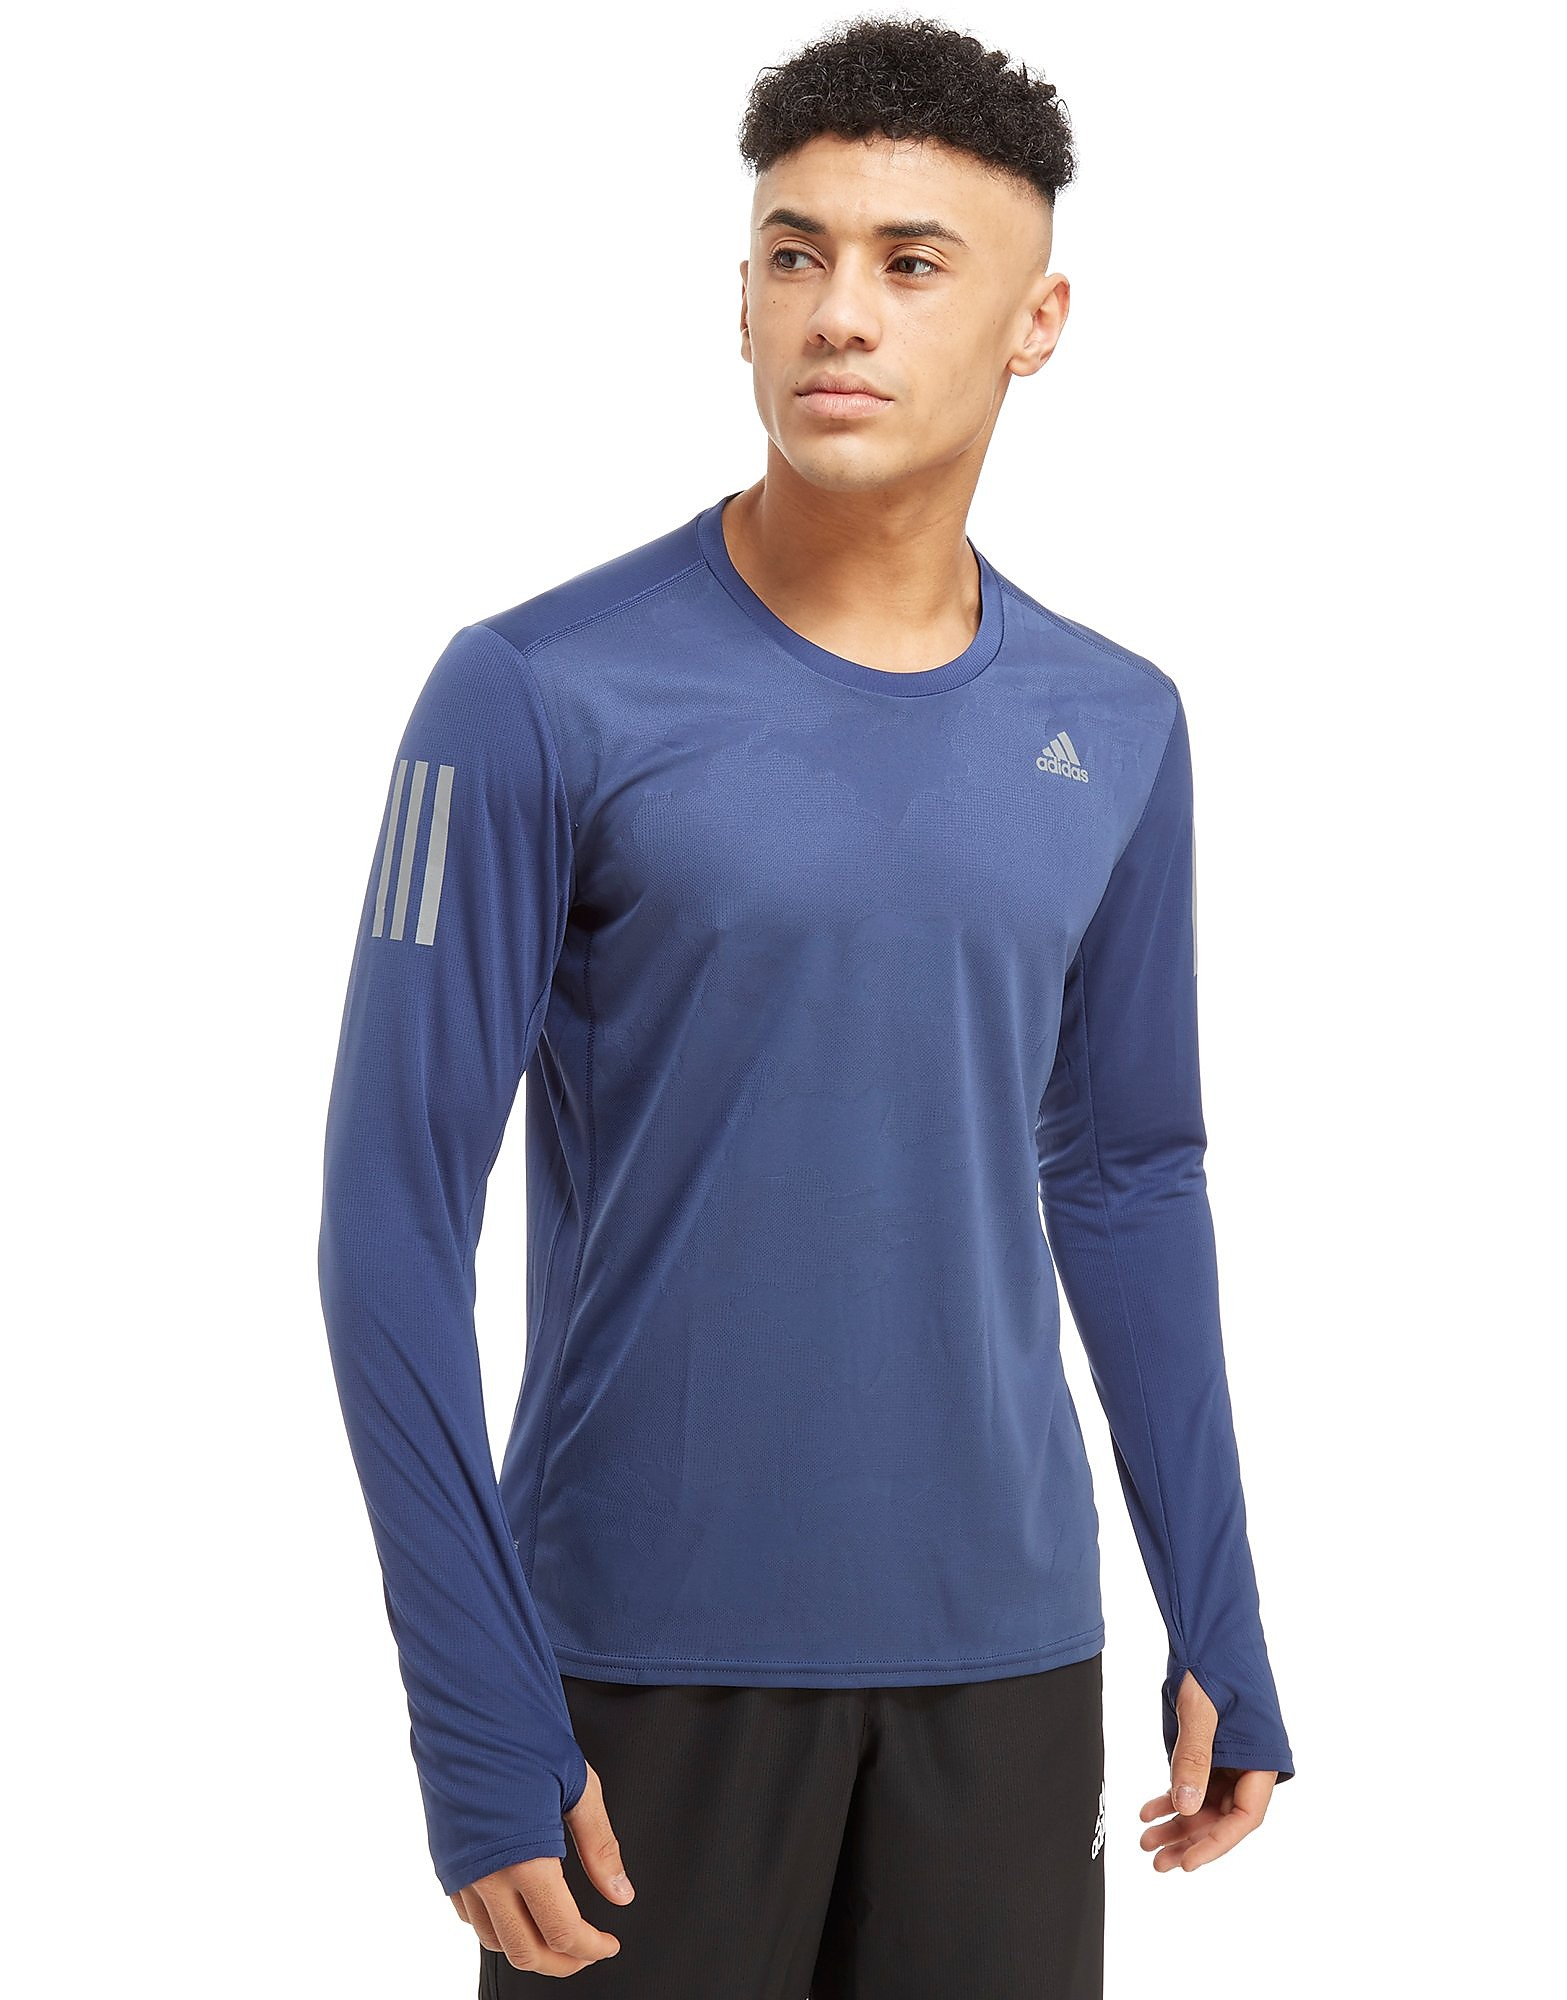 adidas Response Long Sleeve T-Shirt